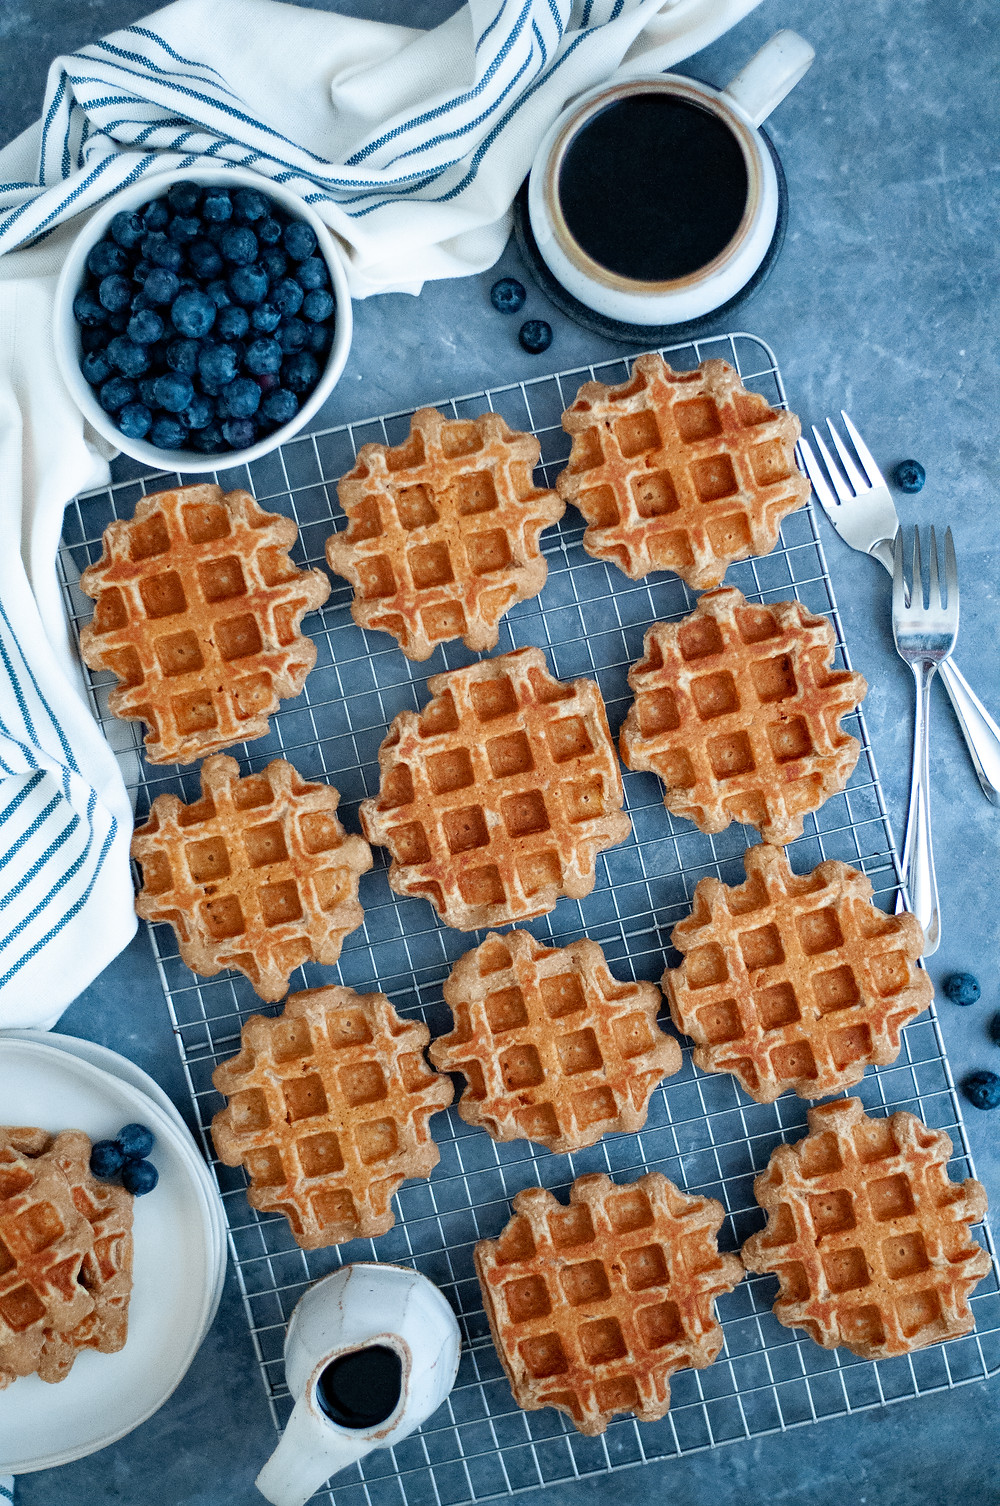 Top down view of this healthy waffle recipe displayed on a wire cooling rack with a carafe of maple syrup, bowl of blueberries, and a cup of coffee